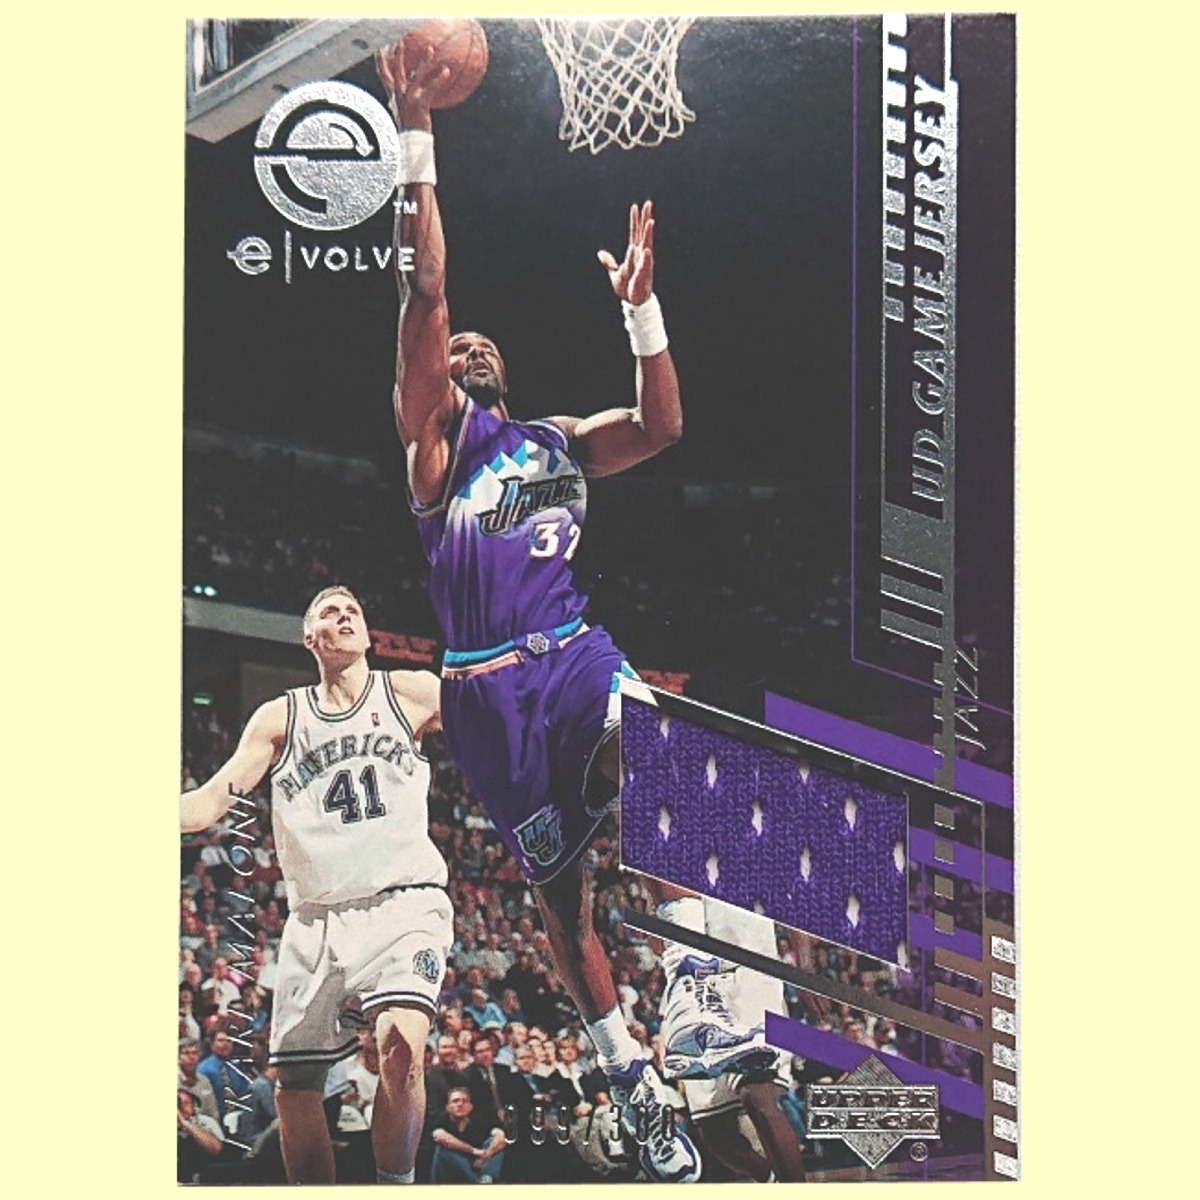 big sale 4e6f8 030a5 【99/300 Jersey】 Karl Malone UD Evolve Game Jersey Jazz Authentic 検索  カール・マローン Game-Used Jersey ジャージ ジャズ